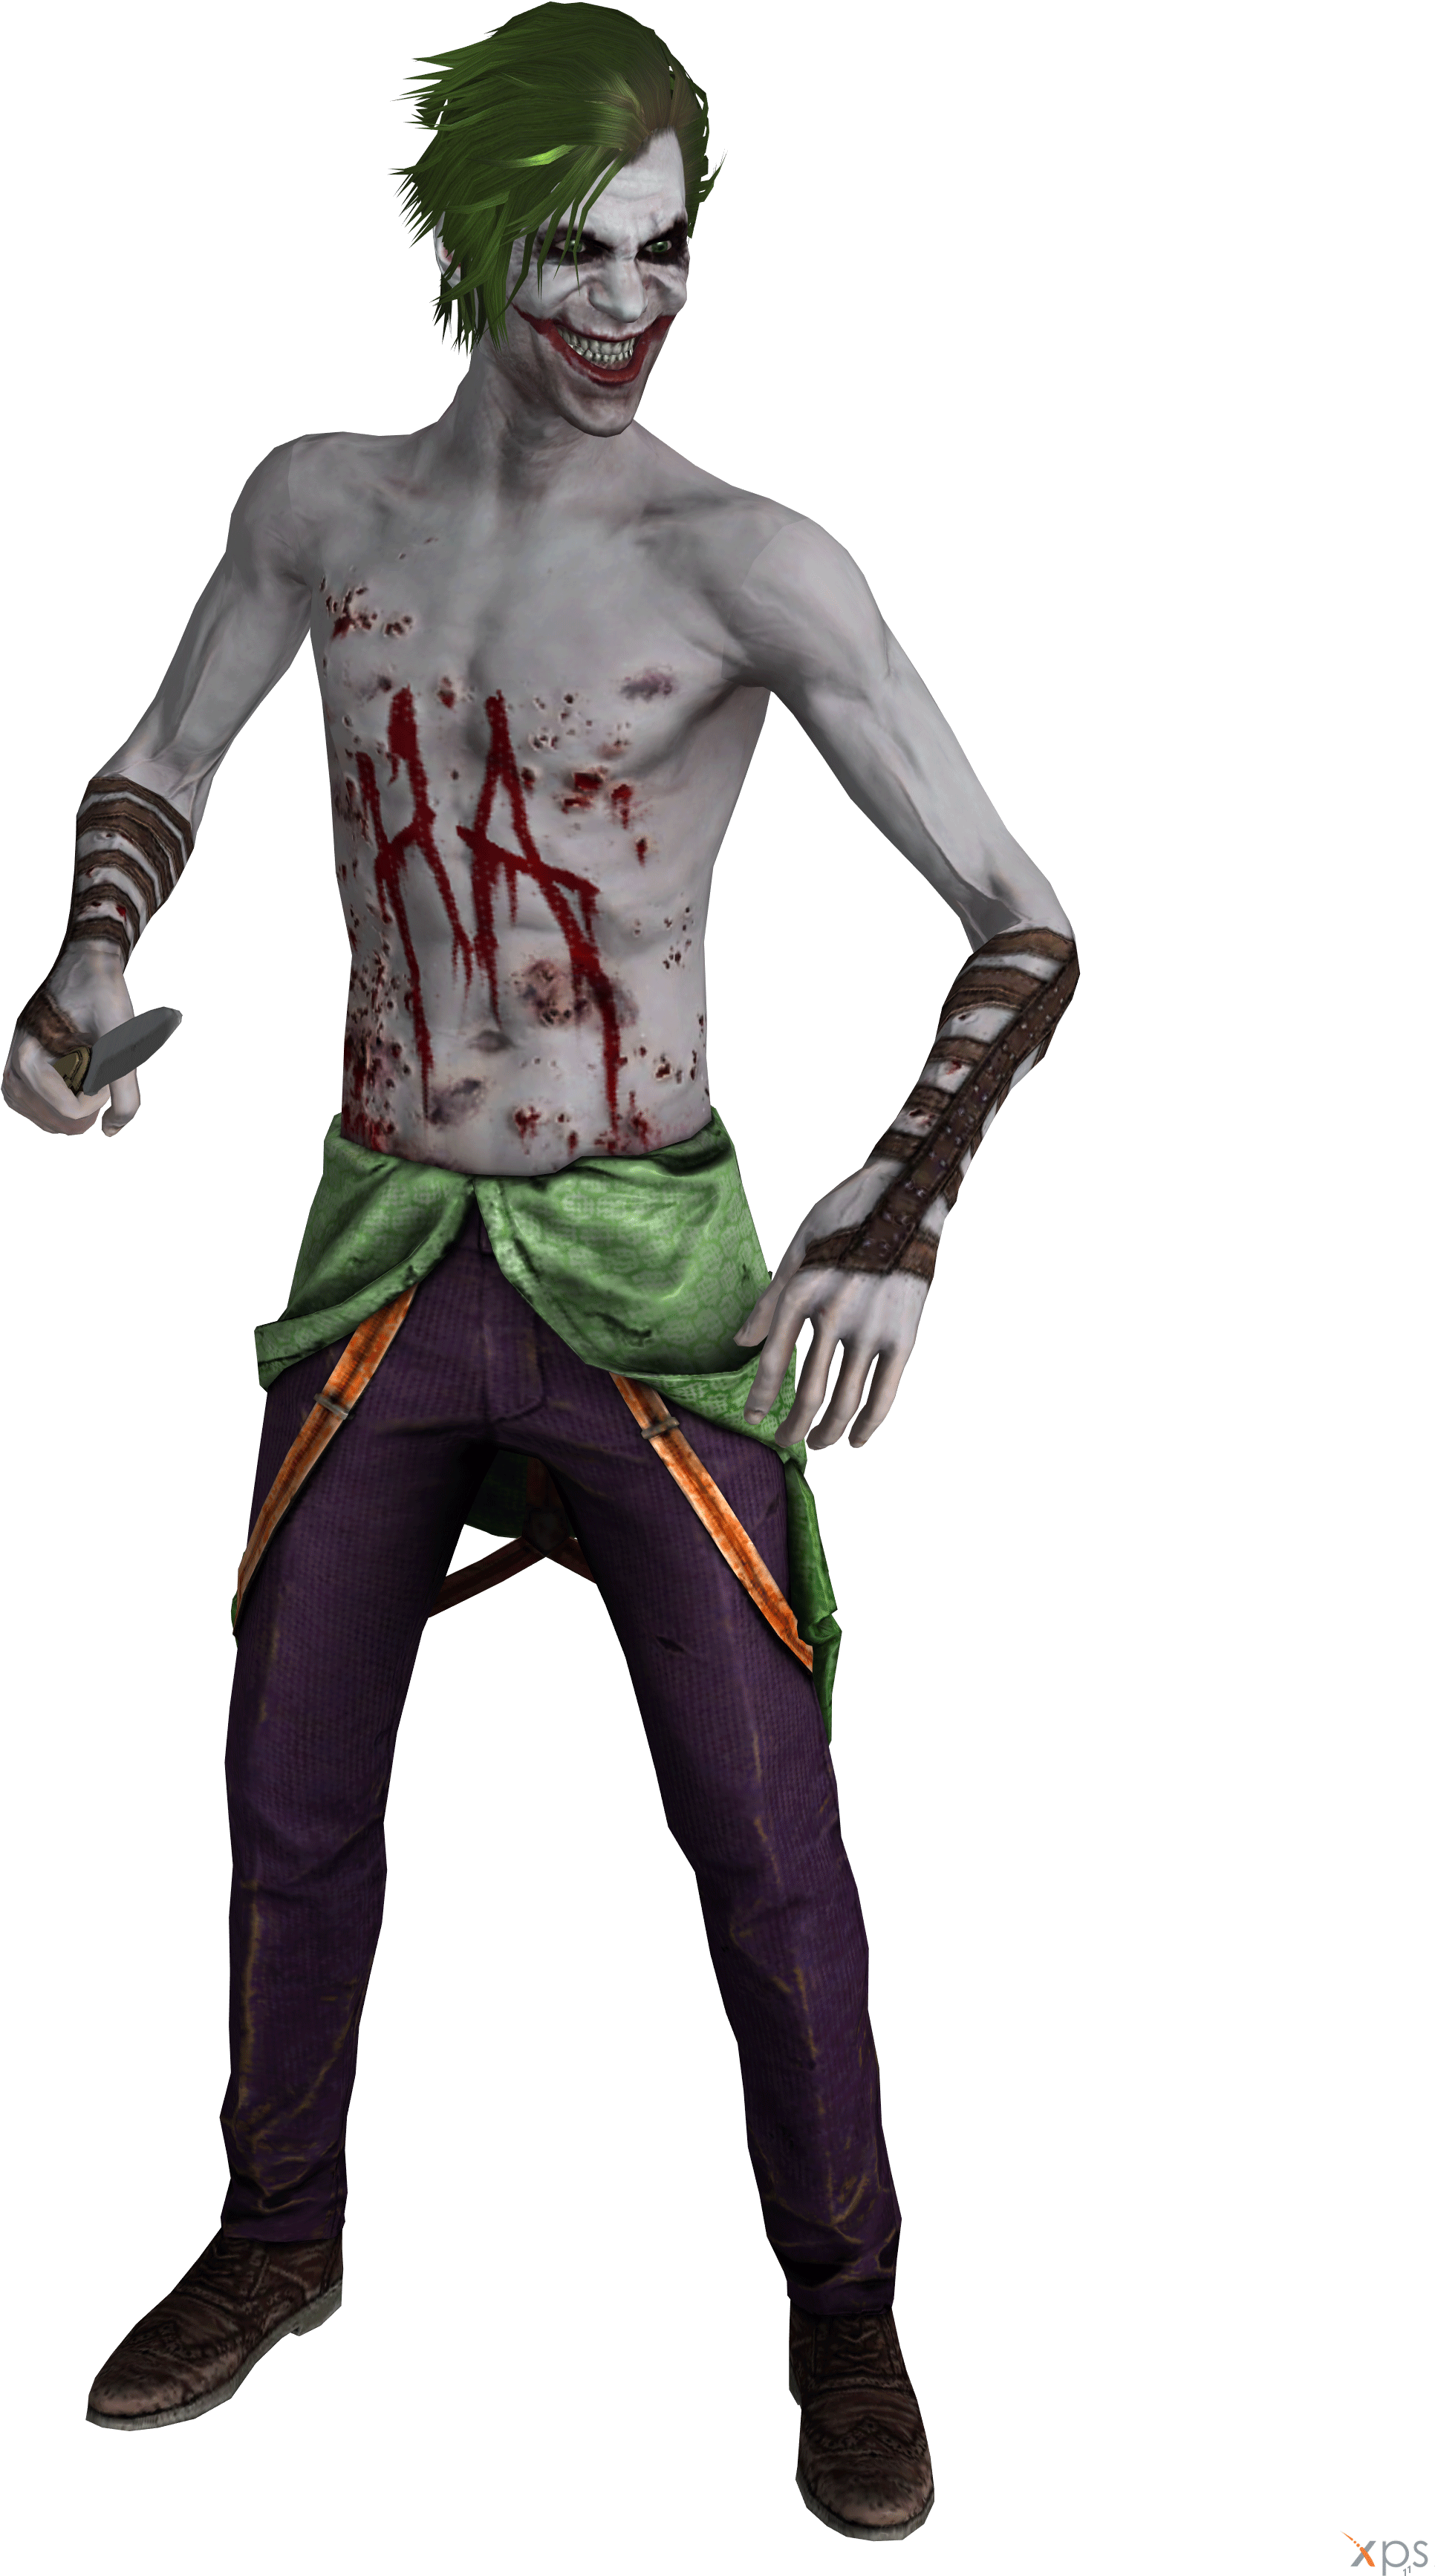 Download Joker Injustice Png Download Image - Injustice 2